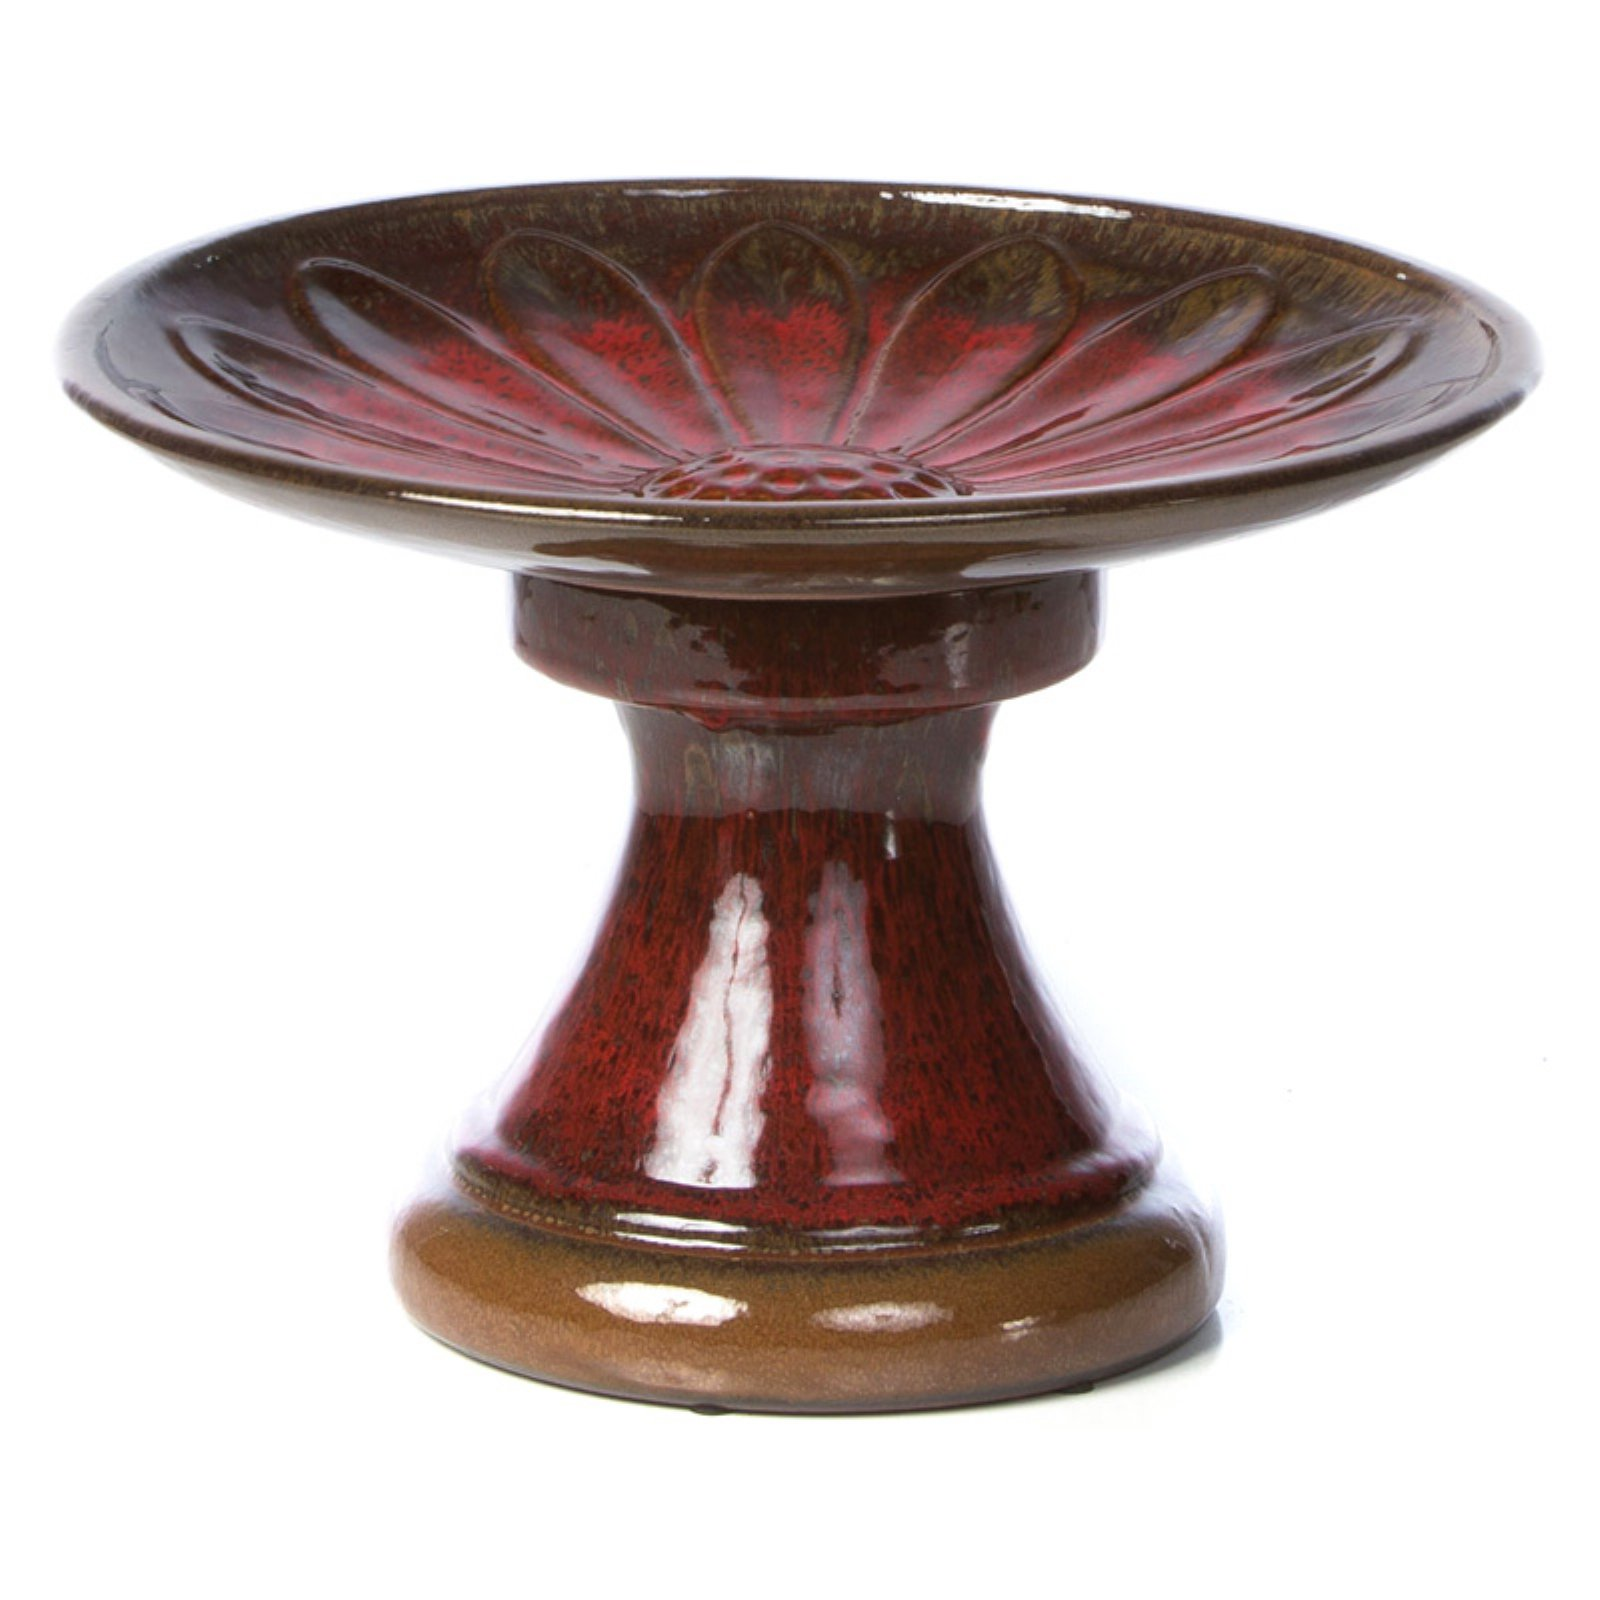 Alfresco Home Daisy Ceramic Birdbath